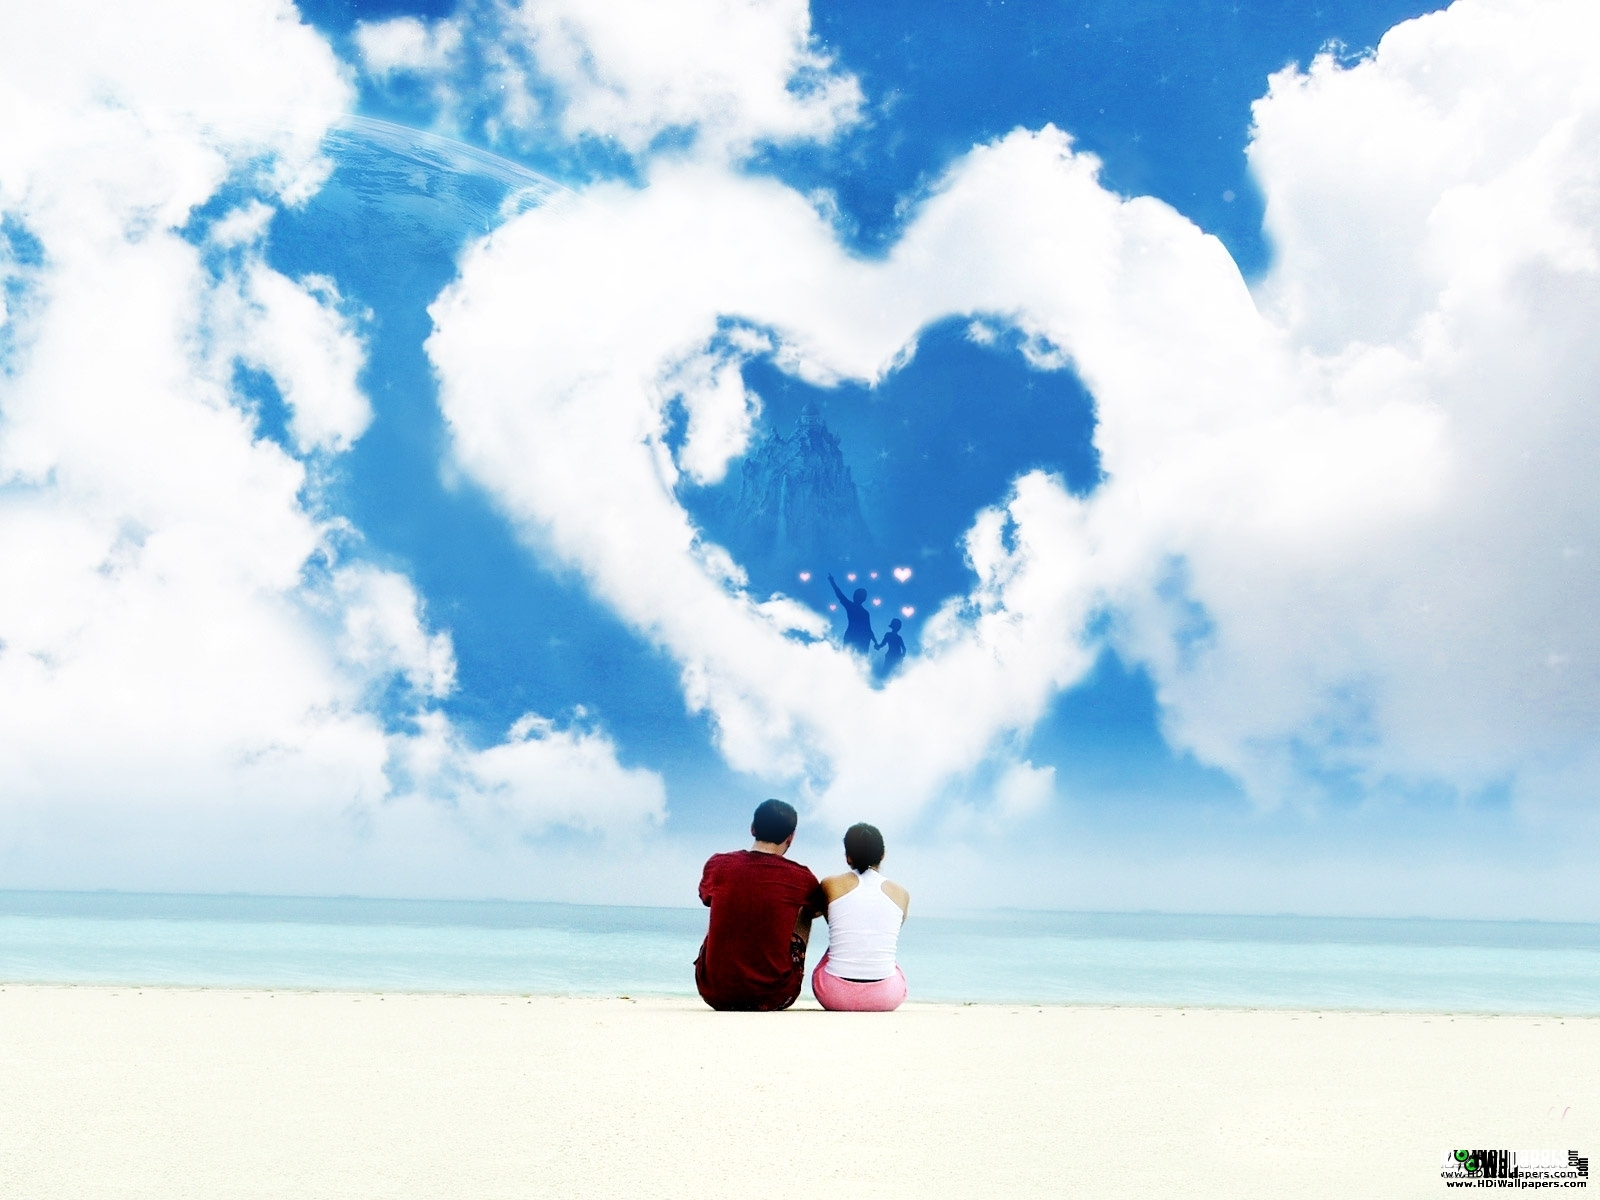 Love Romantic Full Hd Wallpaper : Romantic Love Hd Images Free Download 8 cool Hd Wallpaper - Hdlovewall.com